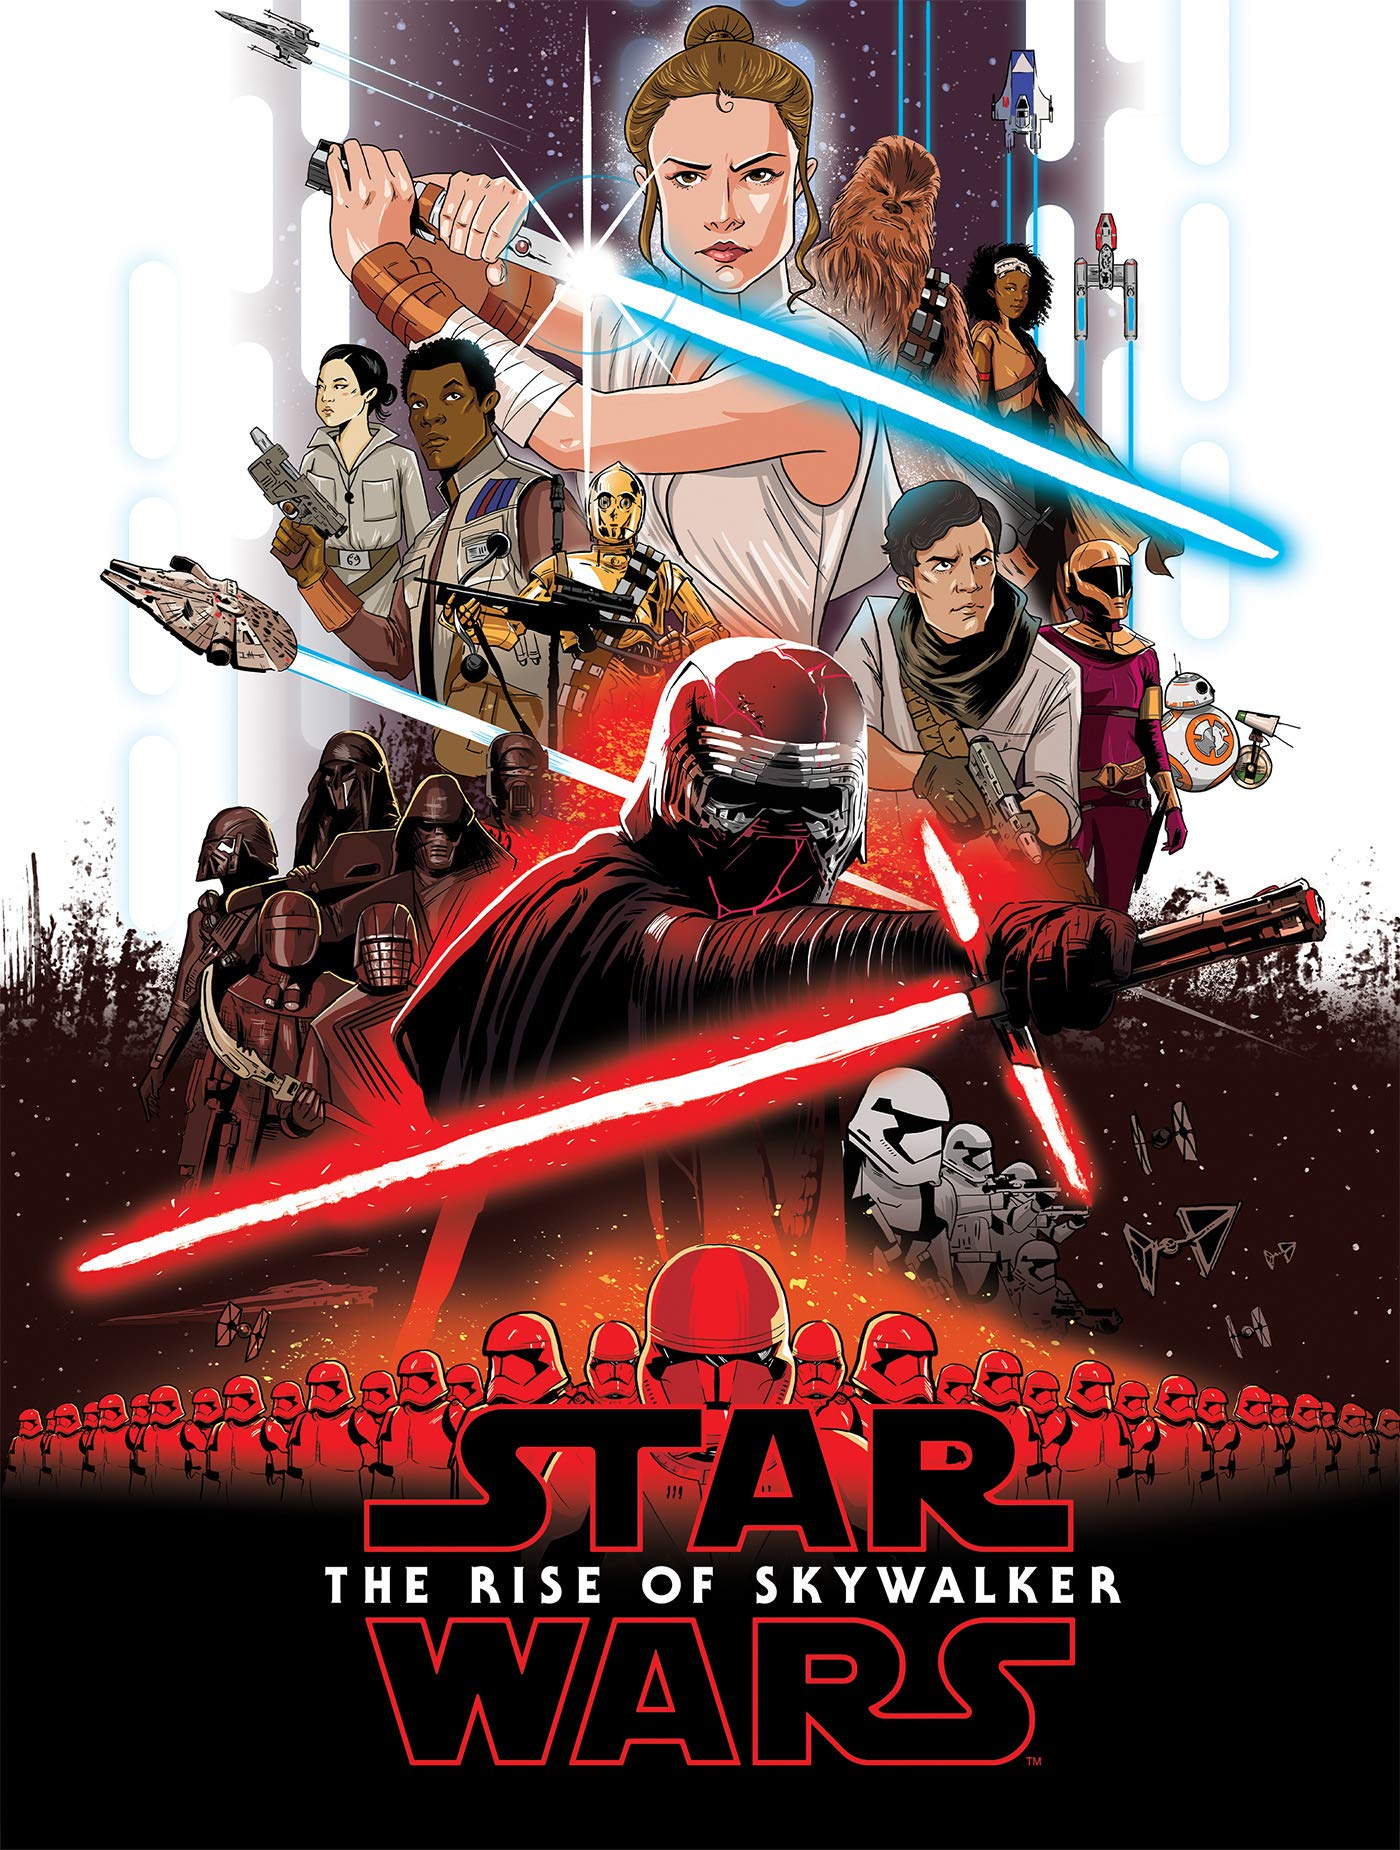 Amazon Com Star Wars The Rise Of Skywalker Graphic Novel Adaptation Star Wars Movie Adaptations 9781684056866 Ferrari Alessandro Books